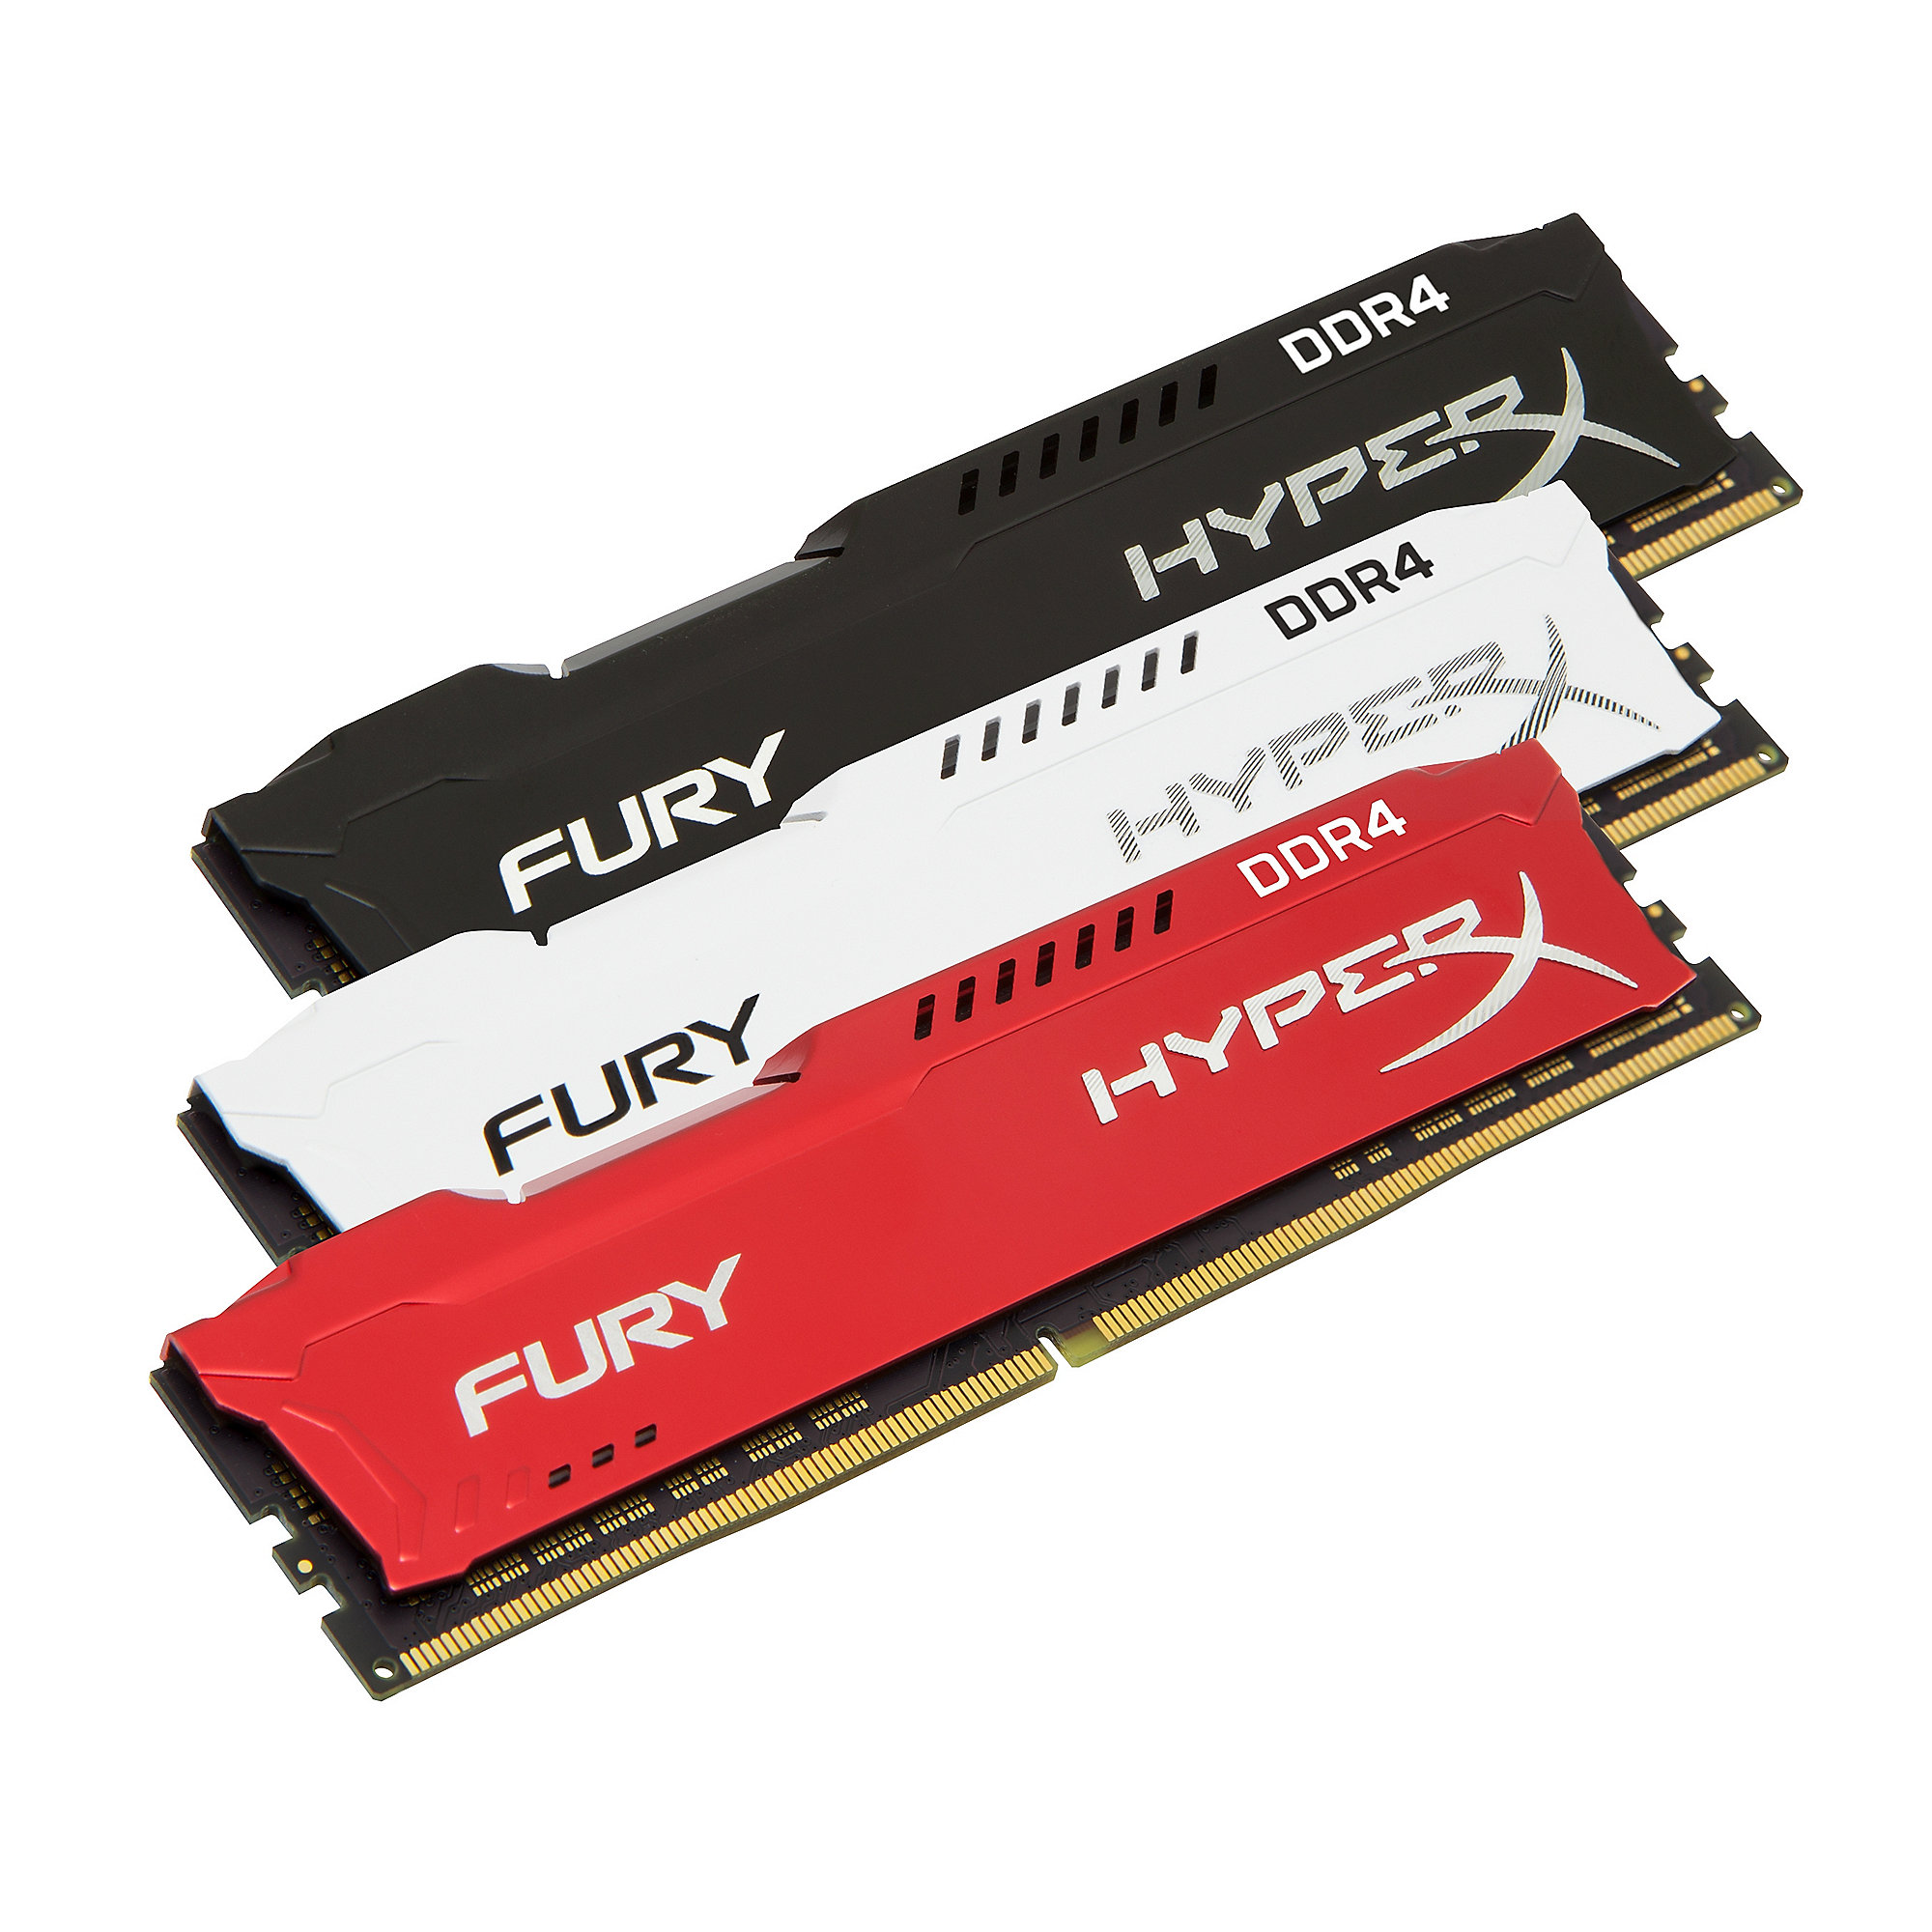 32GB (4x8GB) HyperX Fury schwarz DDR4-2133 CL14 RAM Kit